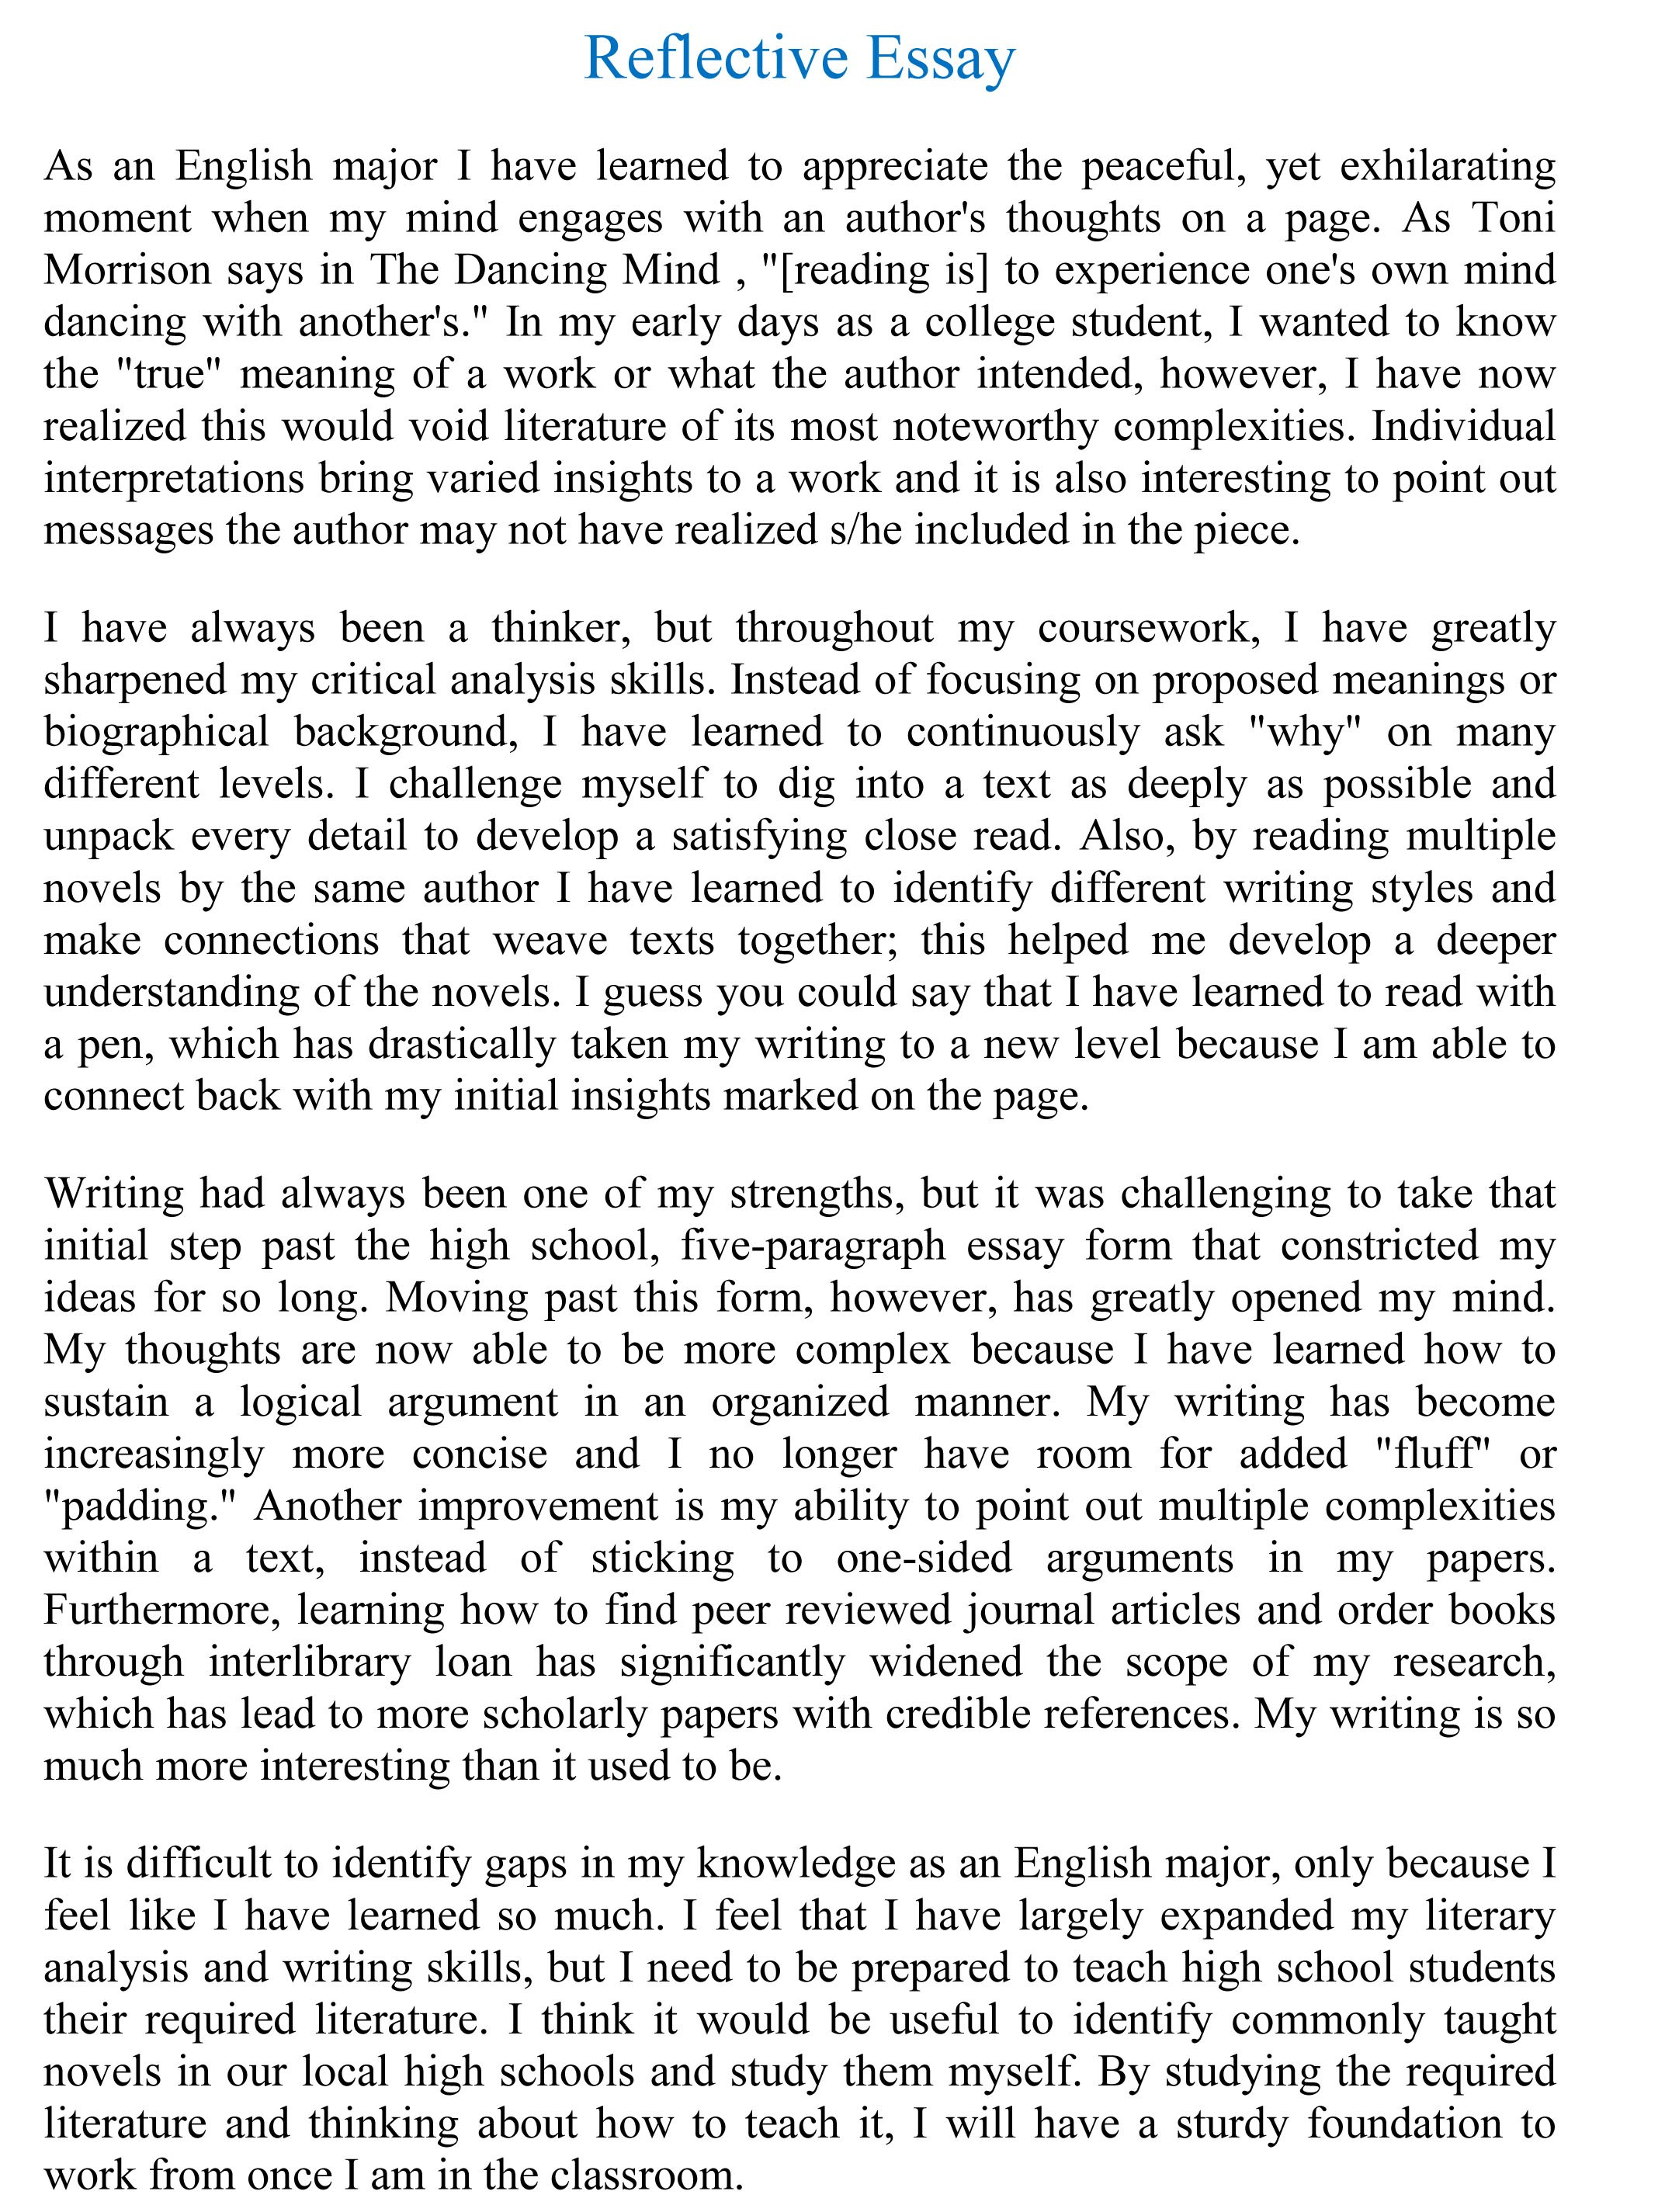 004 Reflective Essay Sample How To Start Introduction Surprising A Write An Example Full